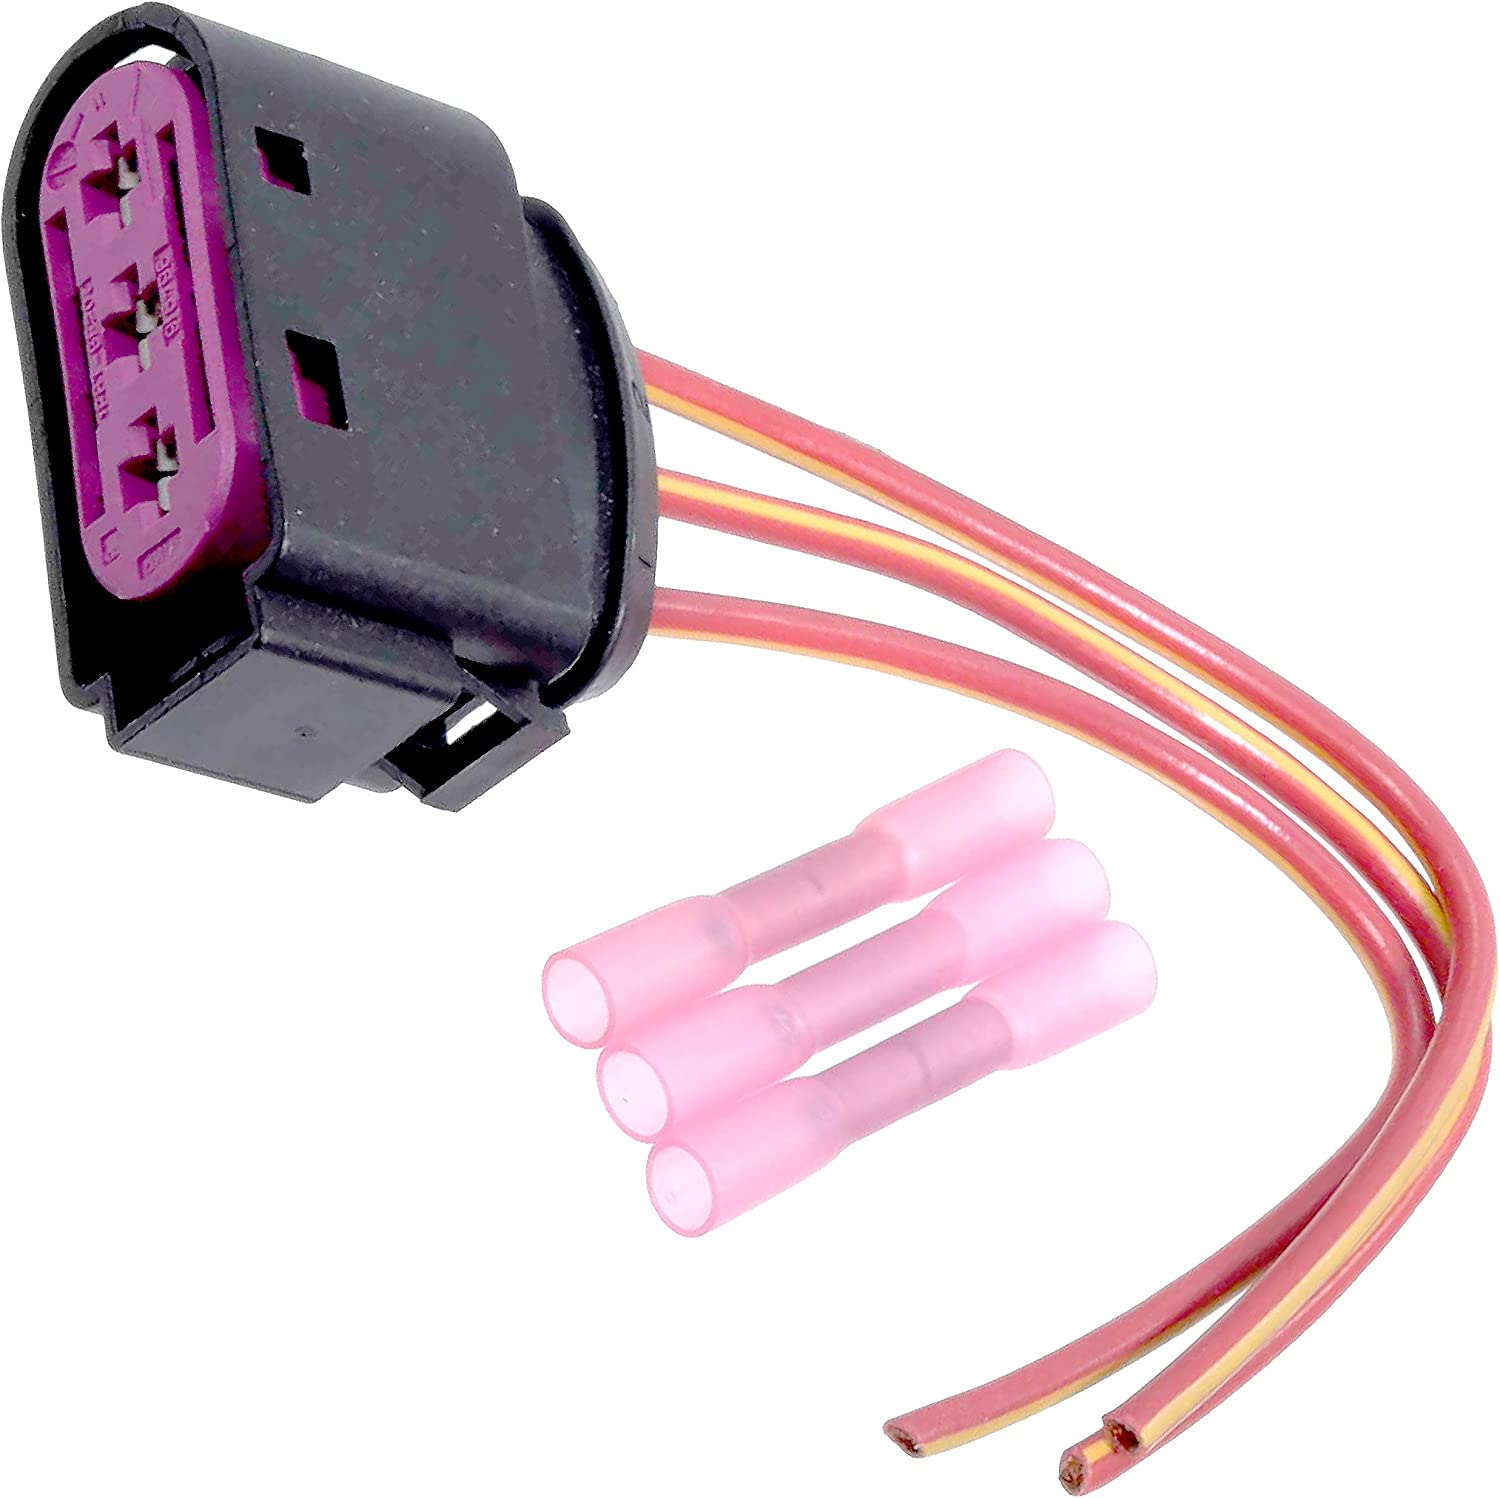 Amazon.com: APDTY 133818 Wiring Harness Pigtail Connector Fits ... 2005 Beetle Fuse Box Amazon.com